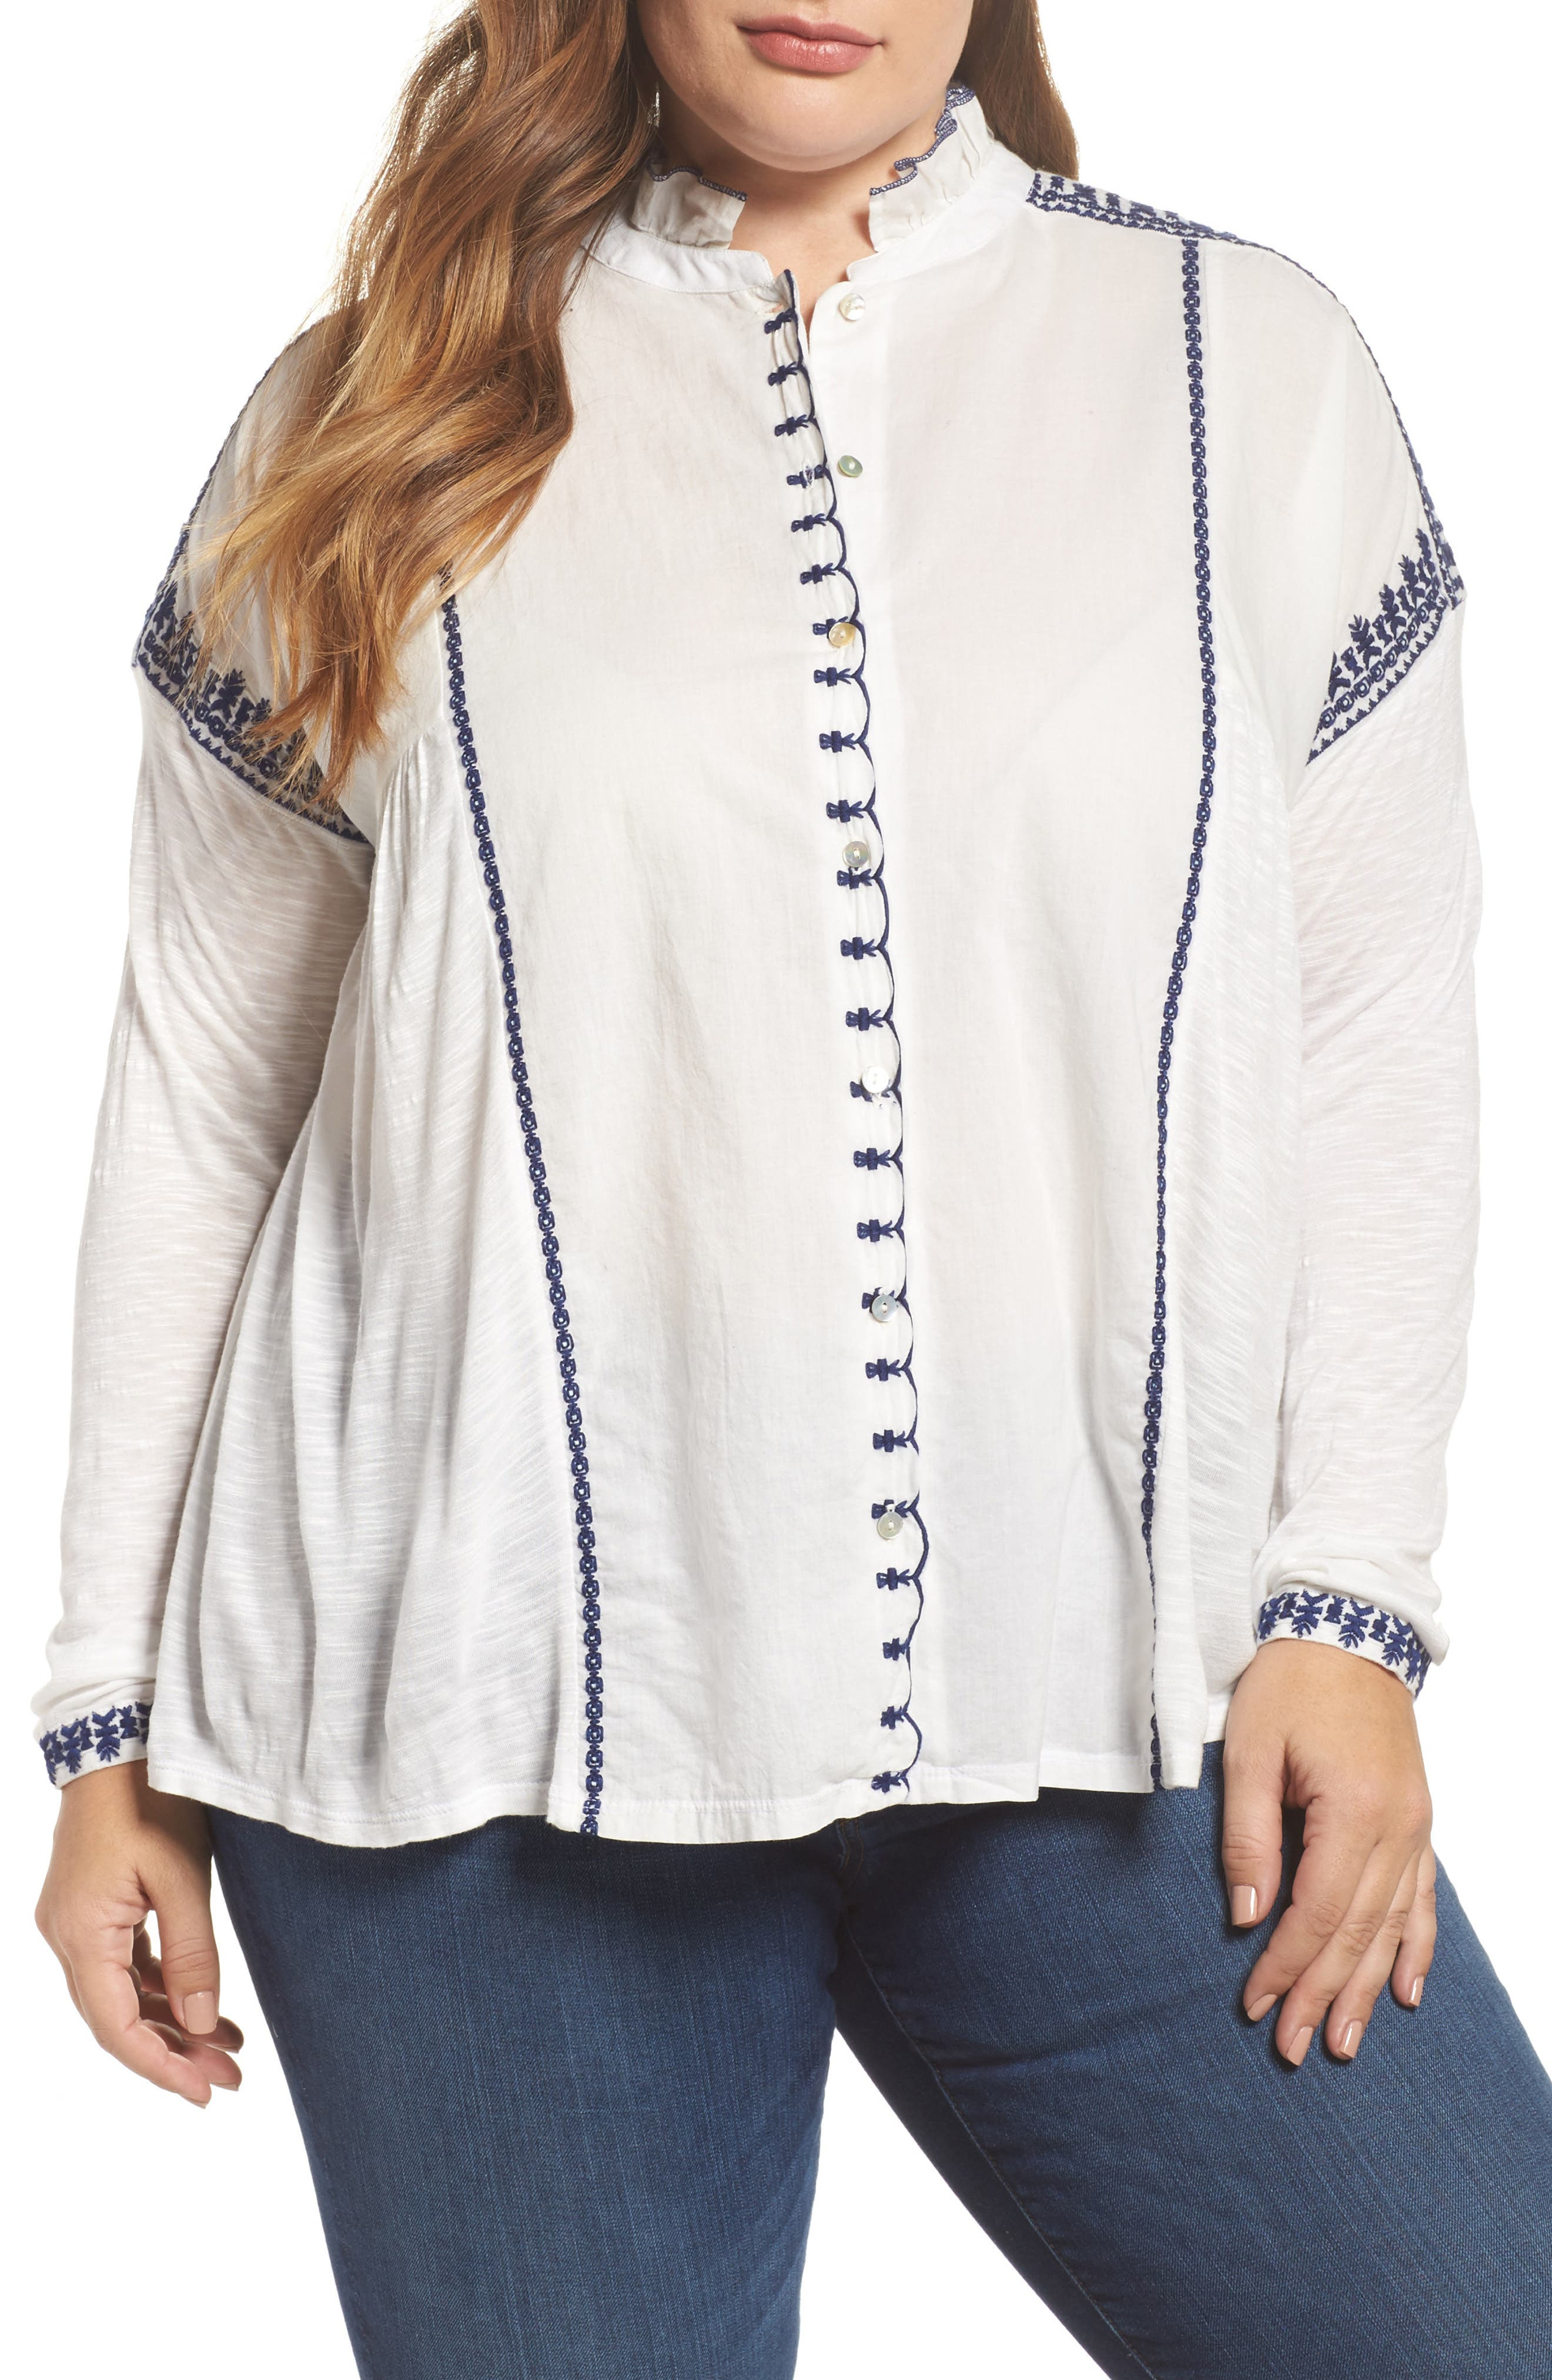 Embroidered Mixed Media Top,                         Main,                         color, 110